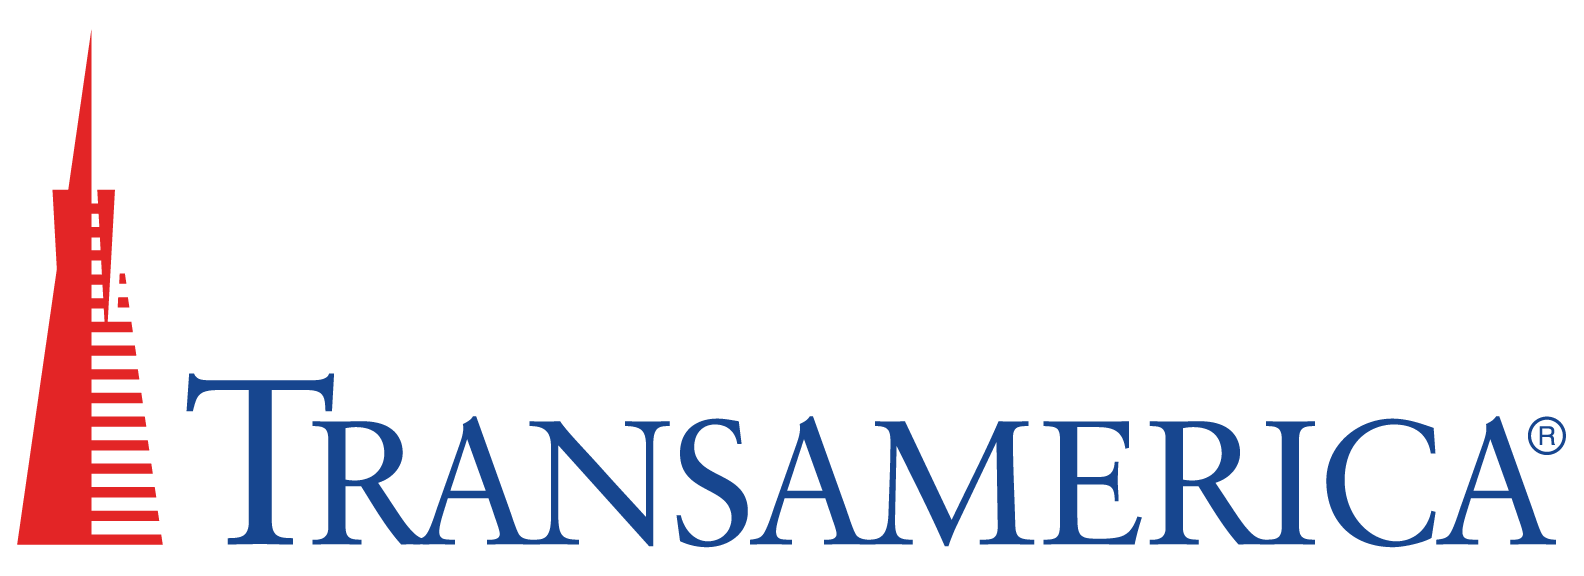 Transamerica - Conferences + Events